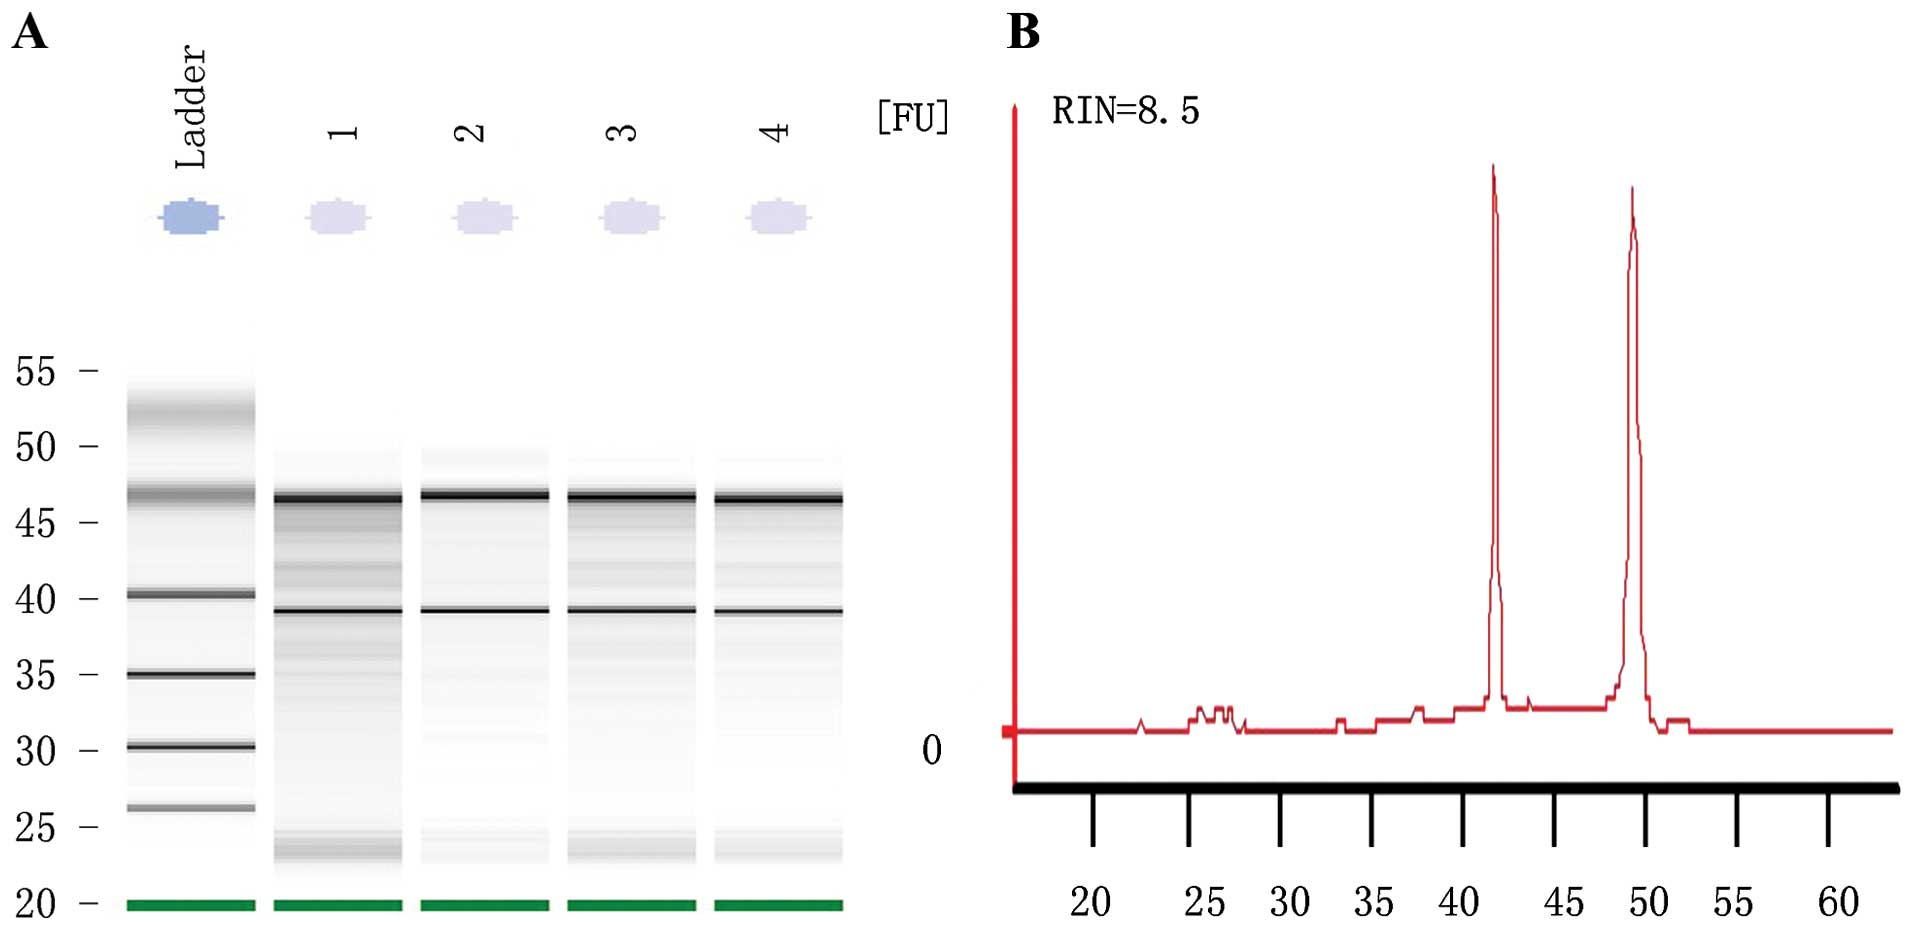 Oncology ReportsKnockdown of microRNA-1323 restores sensitivity to radiation by suppression of PRKDC activity in radiation-resistant lung cancer cells